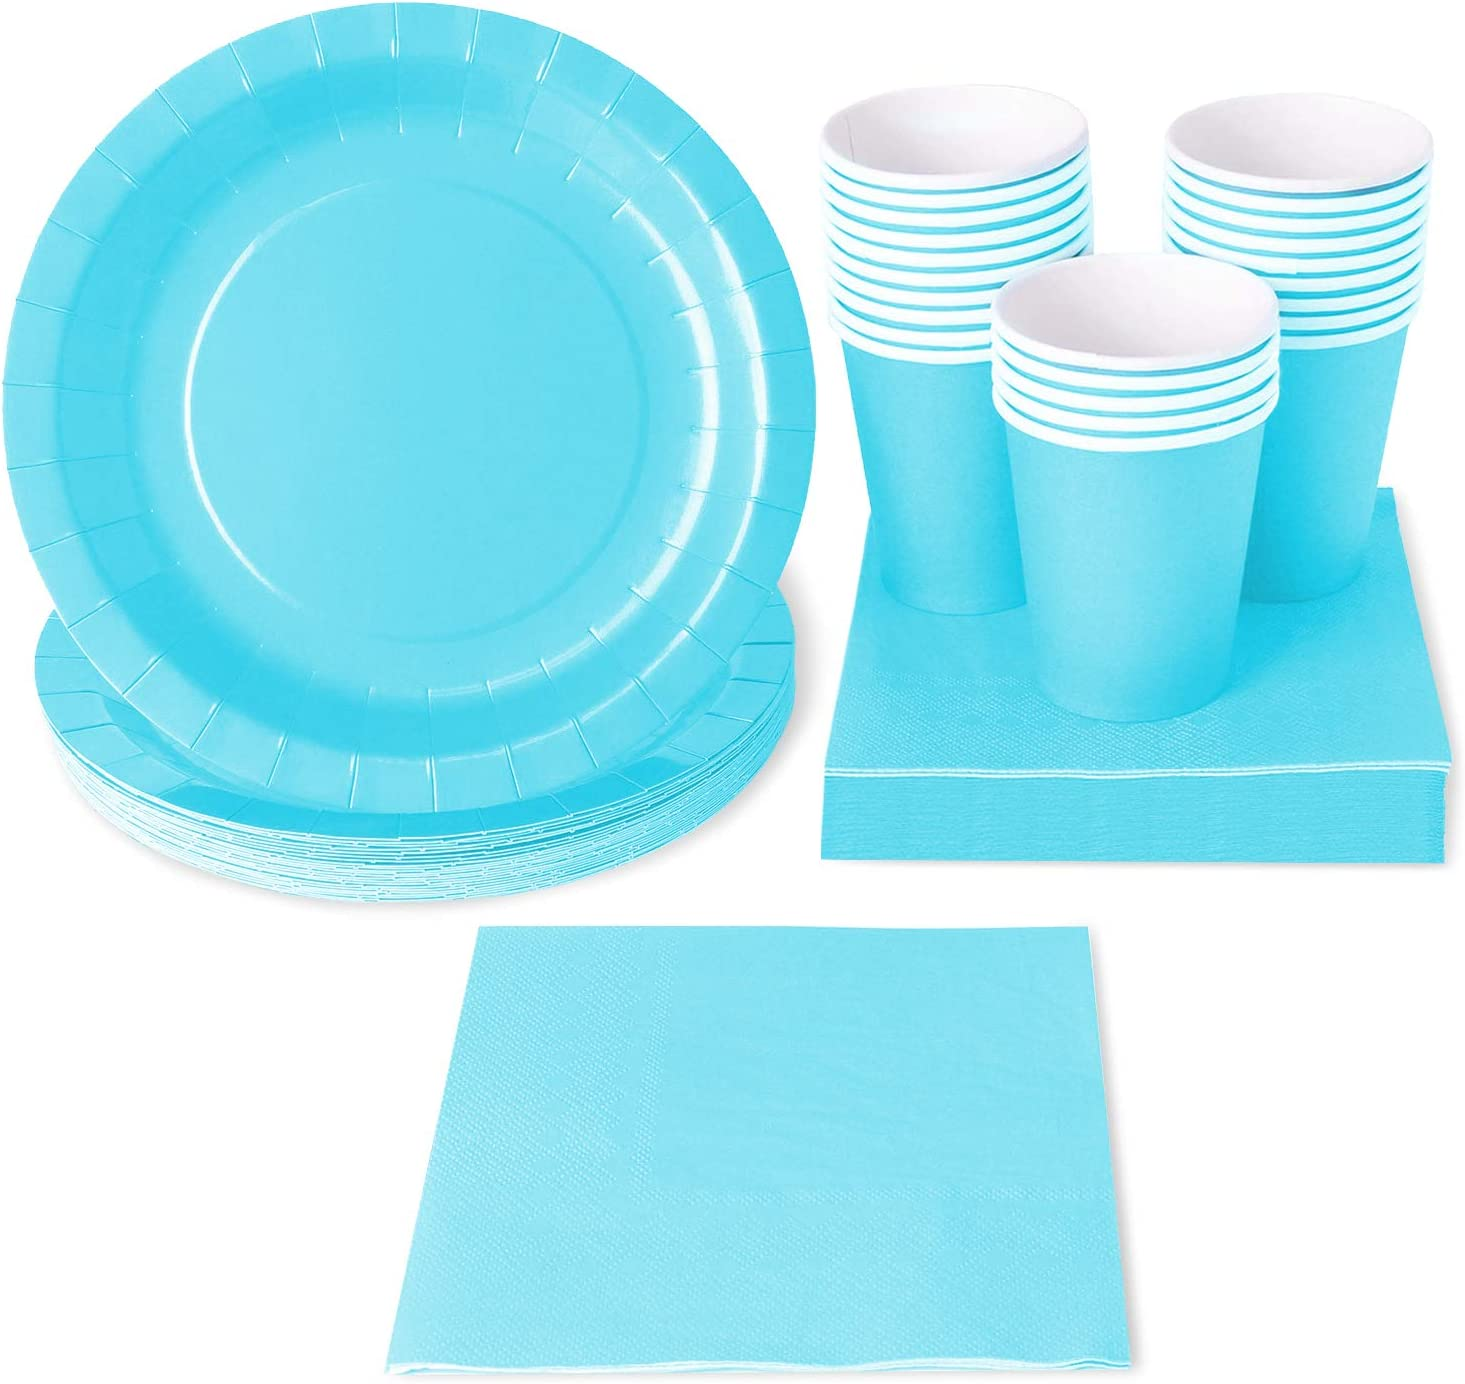 Teal Party Supplies, Paper Plates, Cups, and Napkins (Serves 24, 72 Pieces)